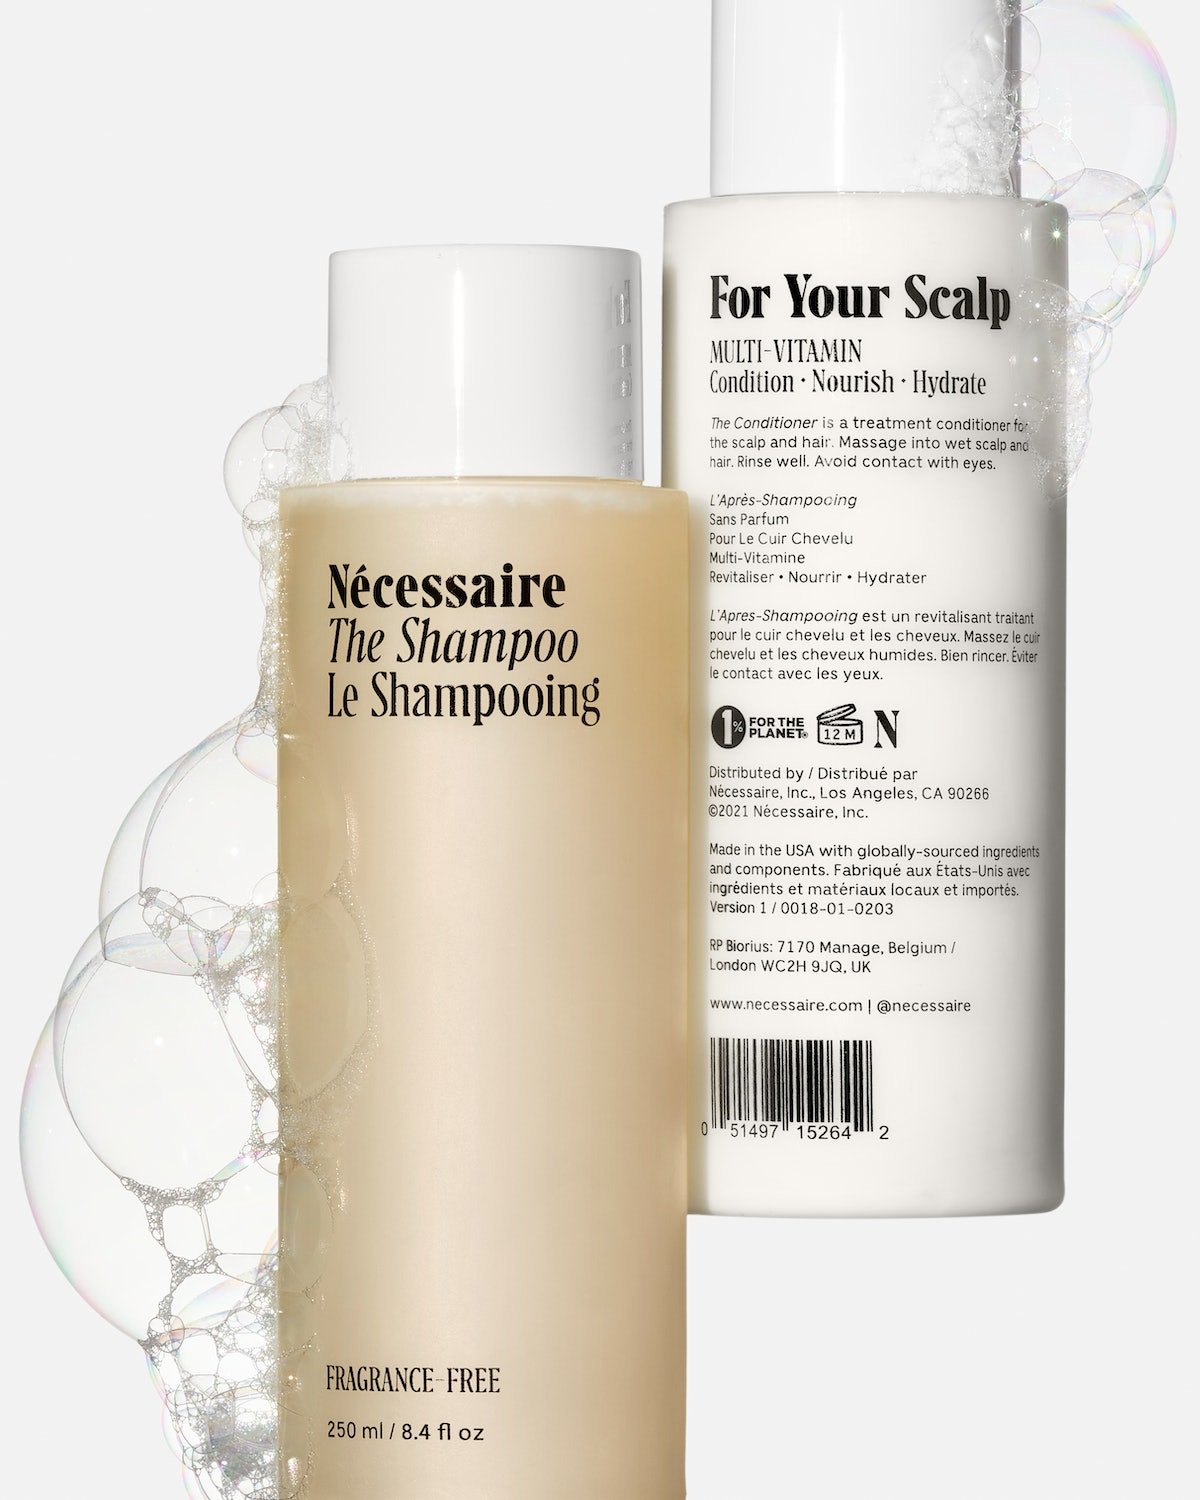 Necessaire's new hair care products, The Shampoo and The Conditioner